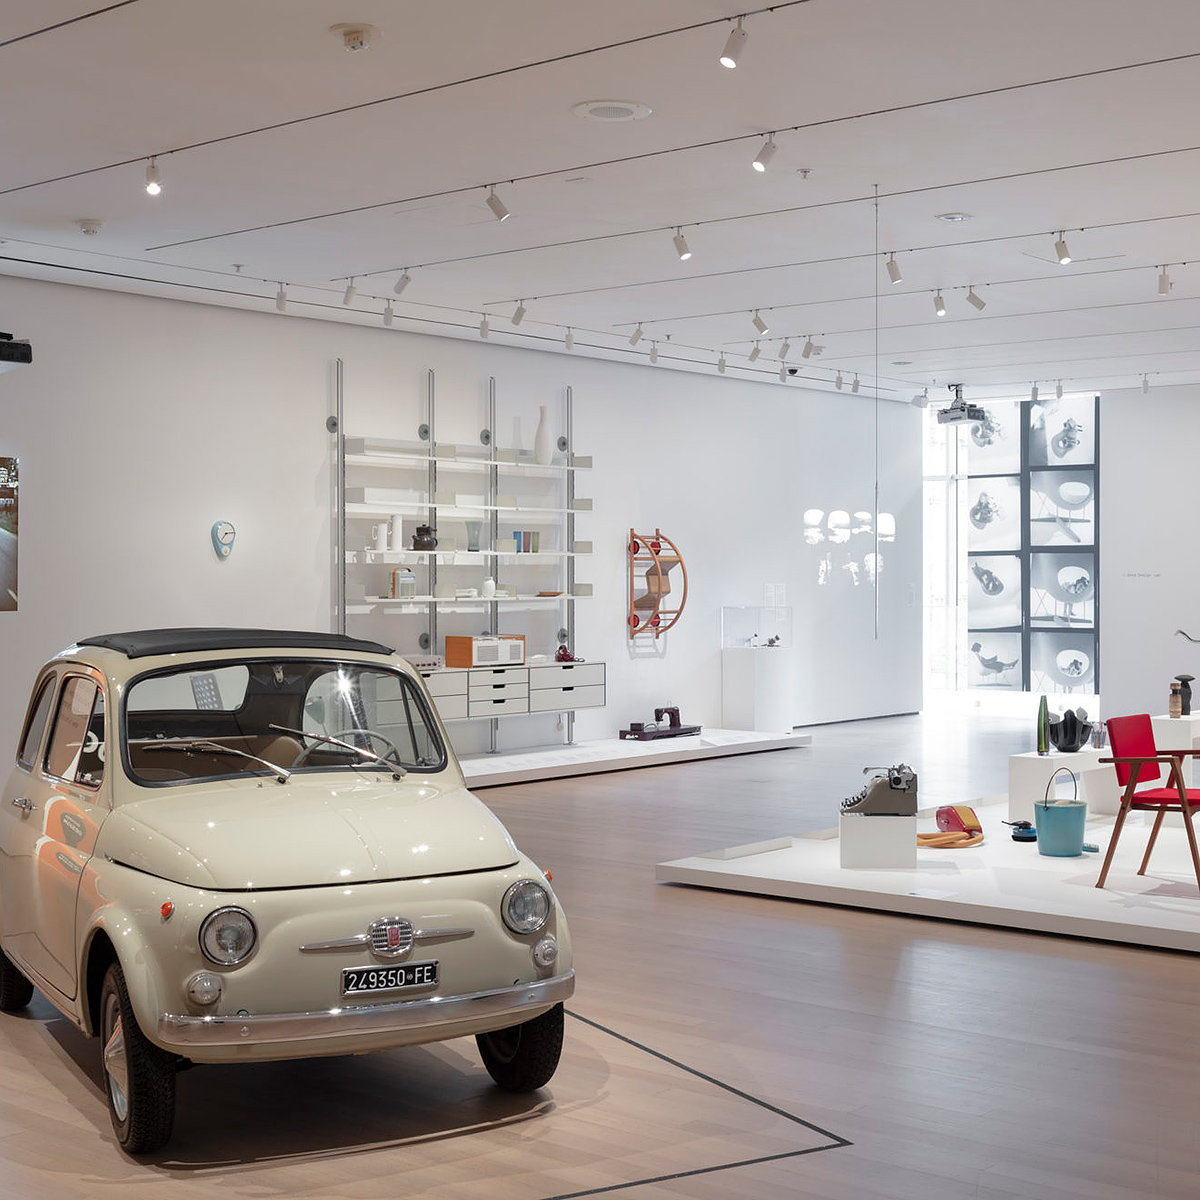 The Value of Good Design at MoMA